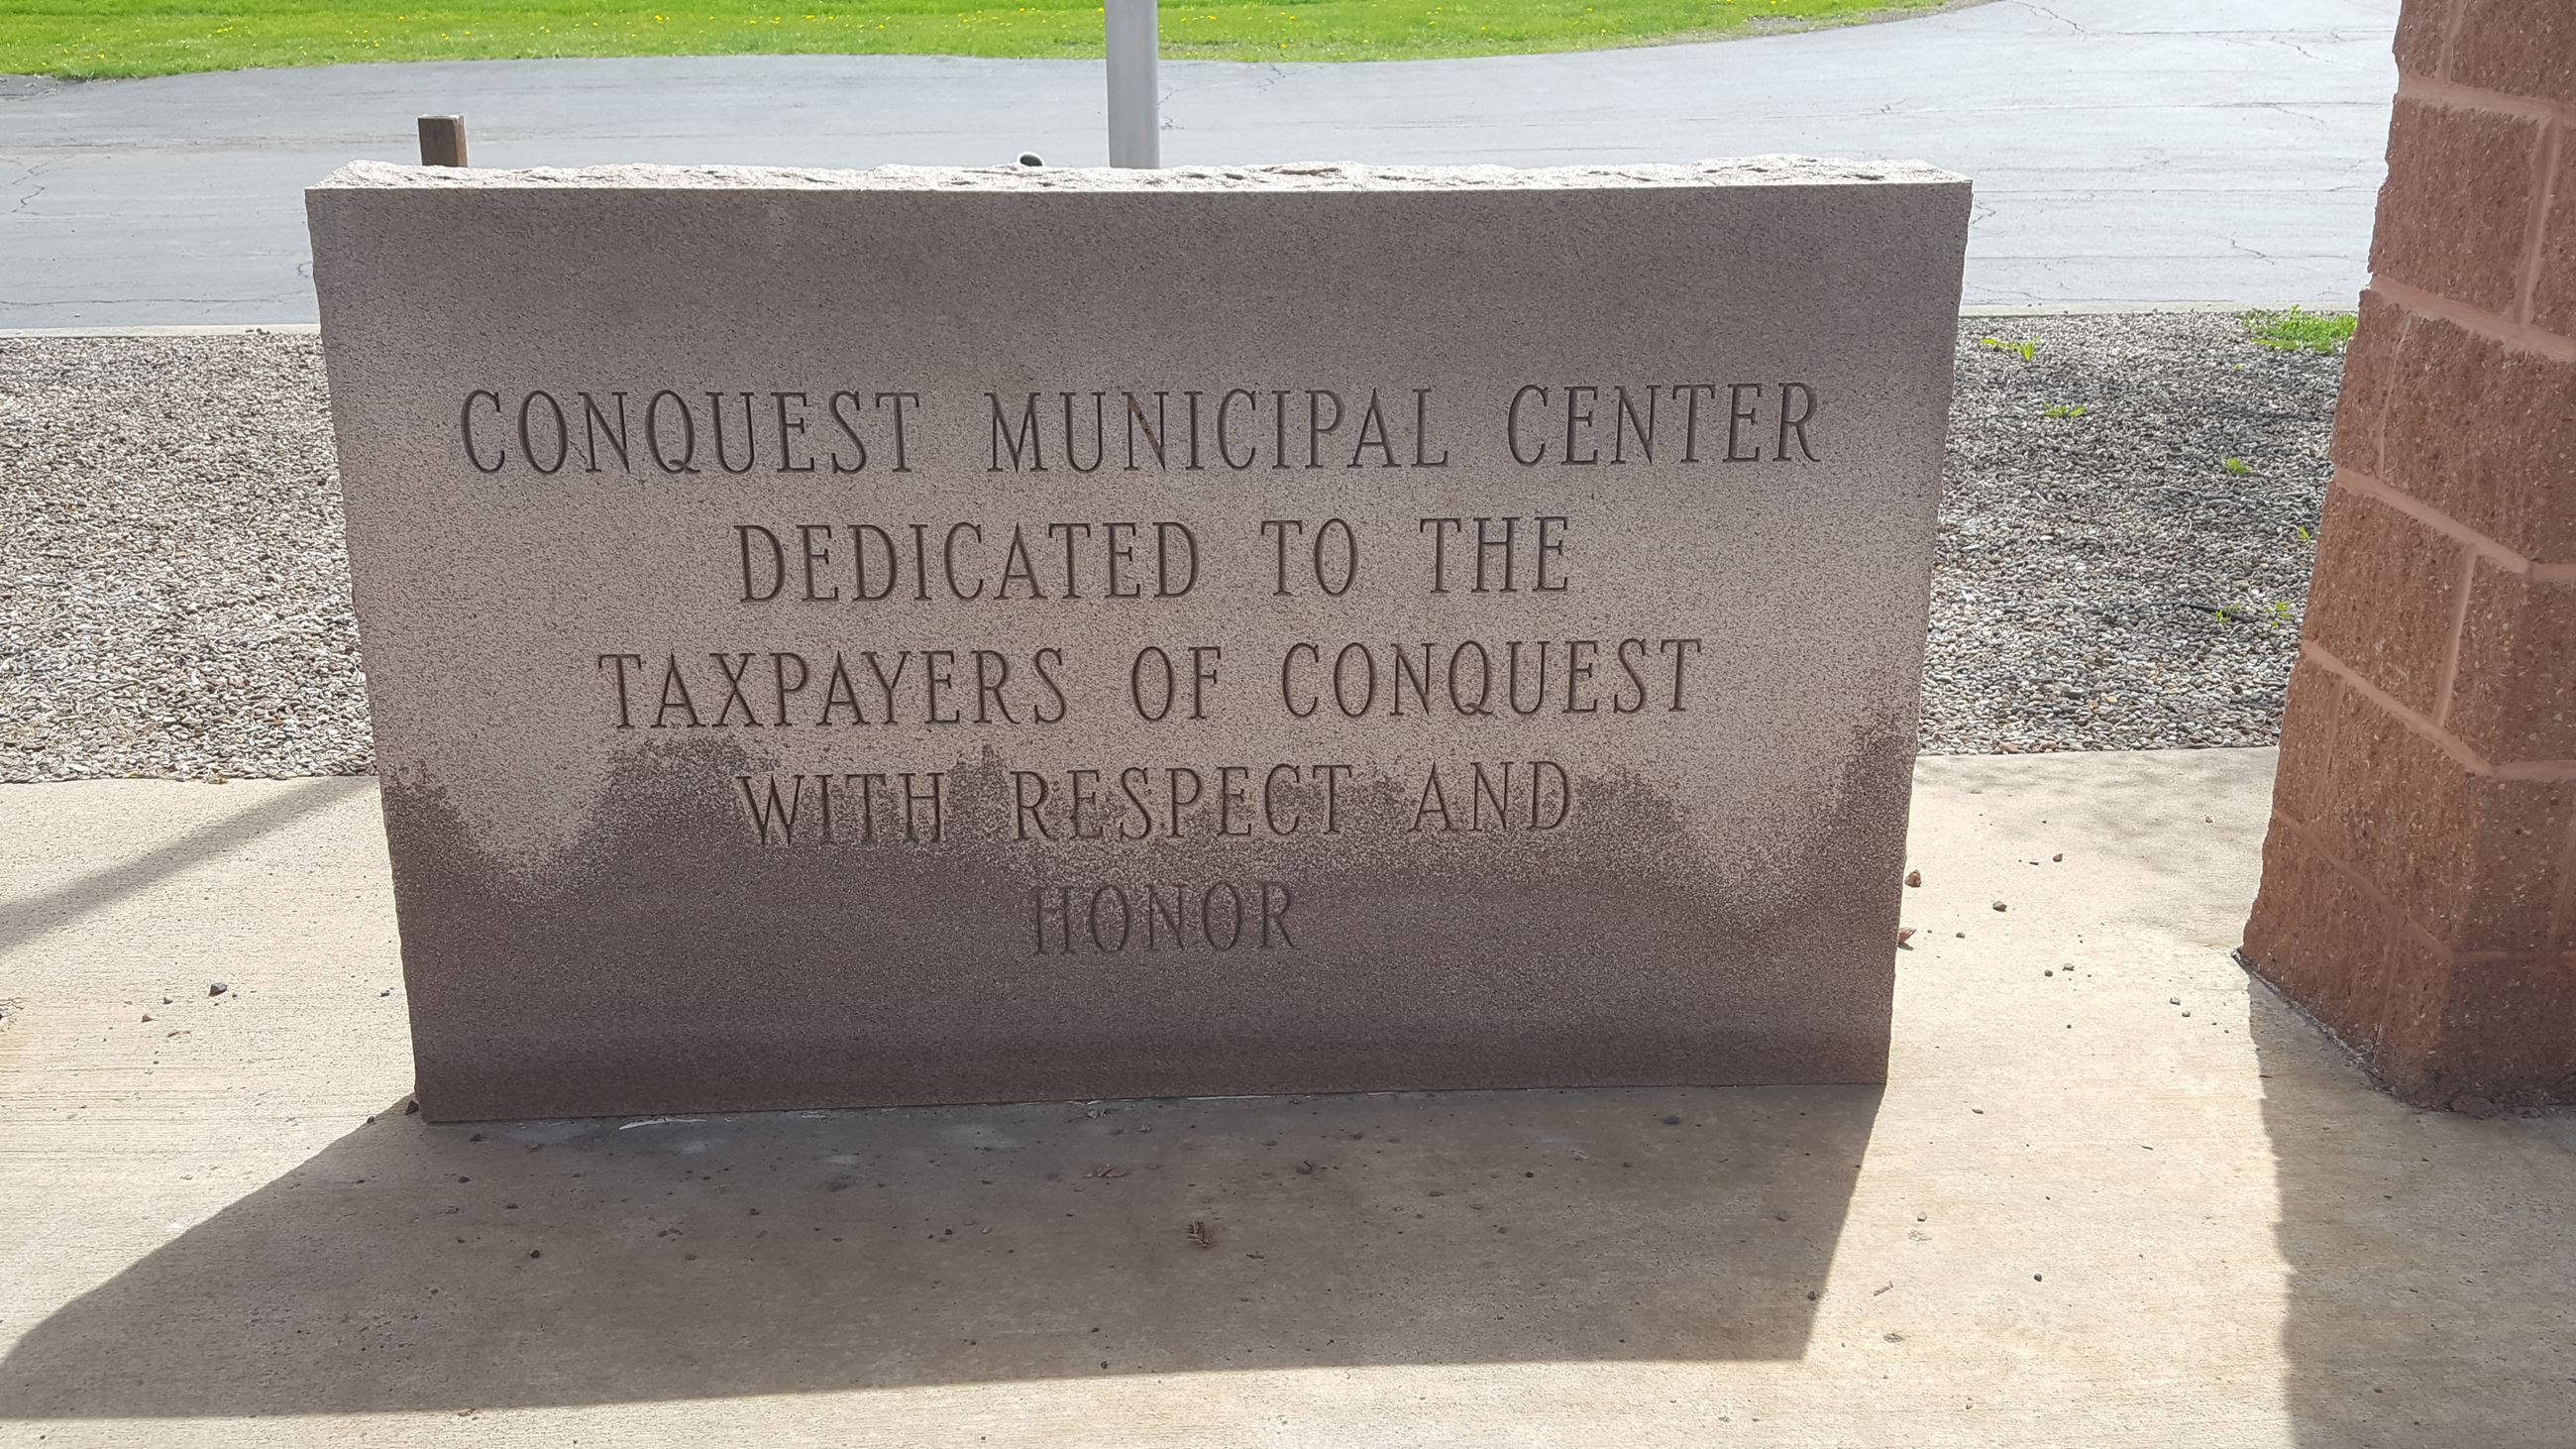 Conquest Municipal Center Dedicated to the Taxpayers of Conquest with Respect and Honor Stone